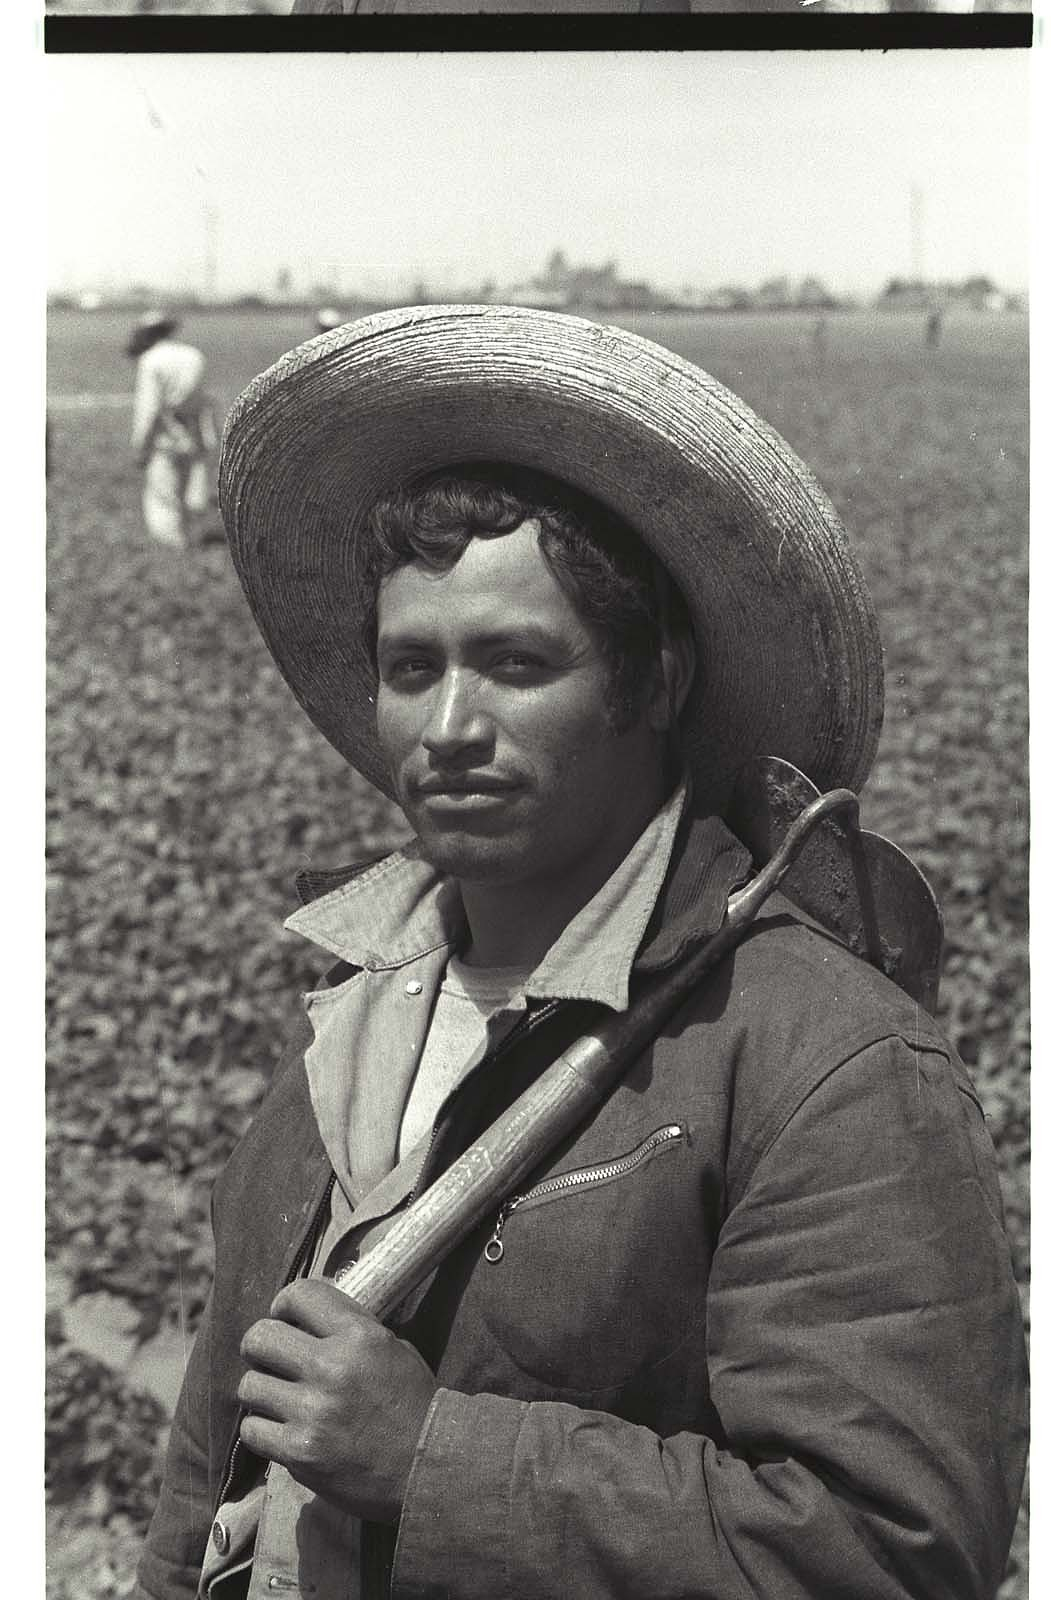 A Bracero worker in the field holding a short-handled hoe.